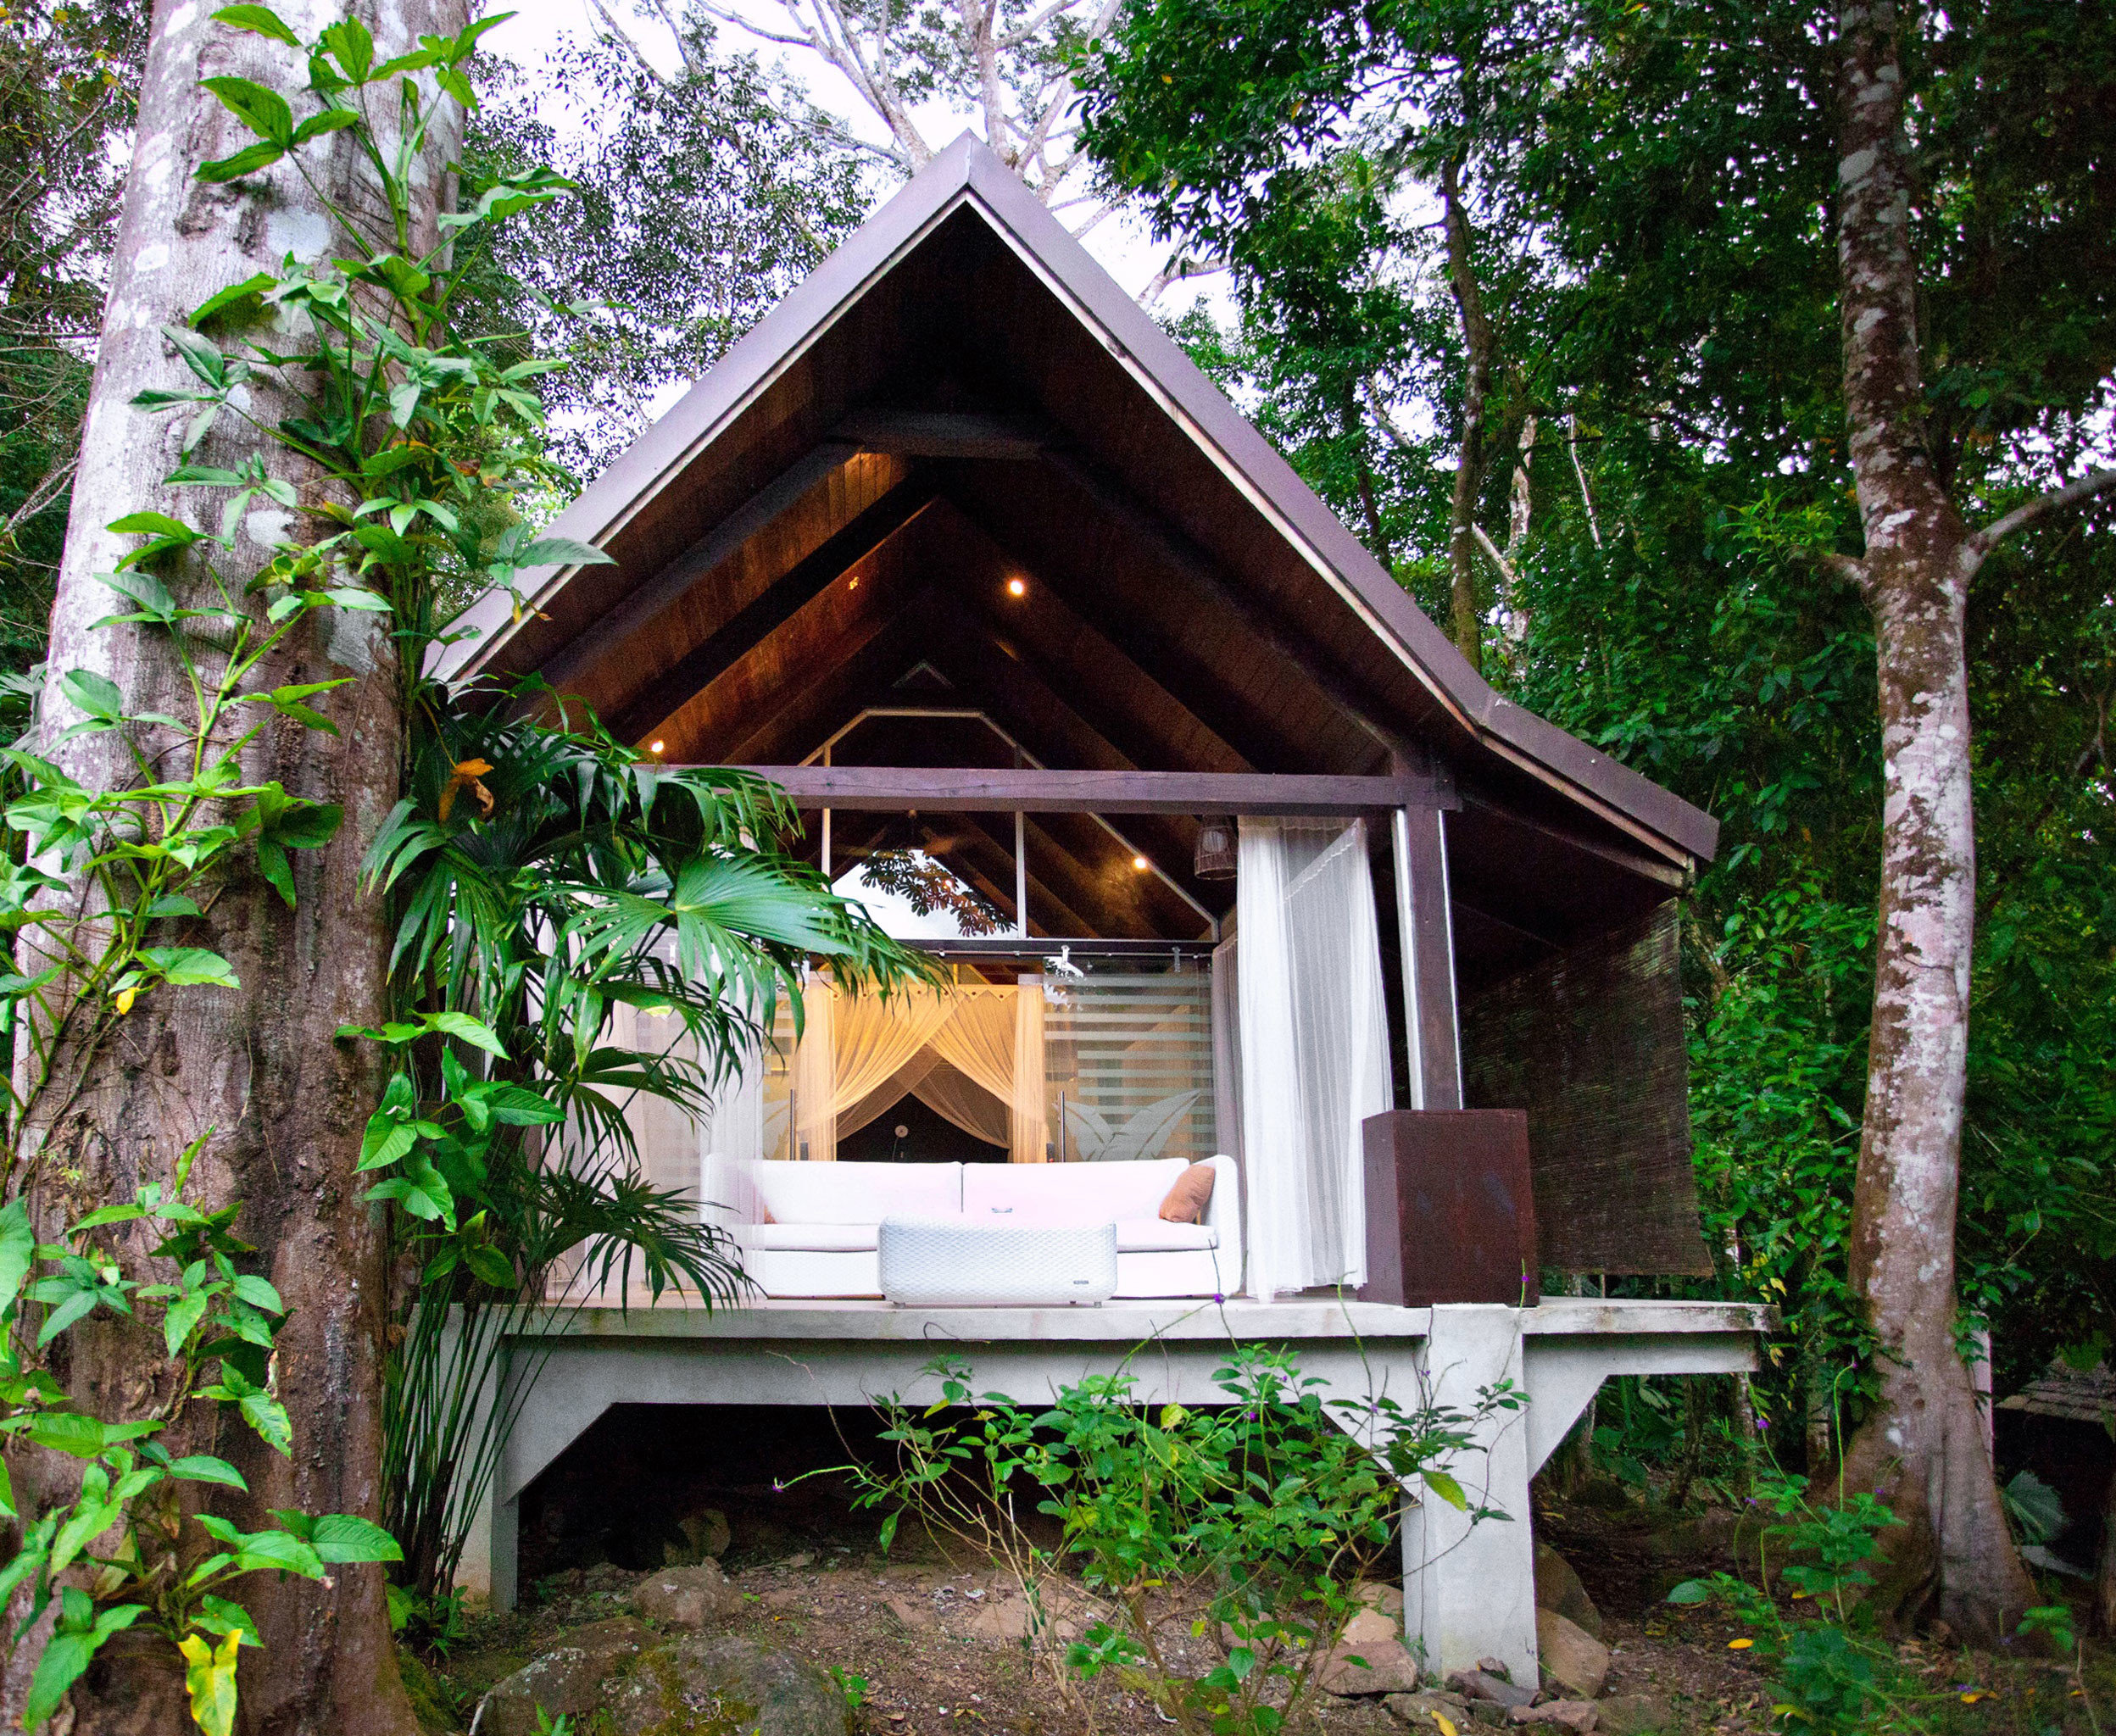 Beach Bedroom Exterior Hotels Living Resort Trip Ideas Villa tree outdoor house building hut log cabin cottage home shrine backyard outdoor structure chapel shack shed Jungle temple shinto shrine Garden place of worship stone